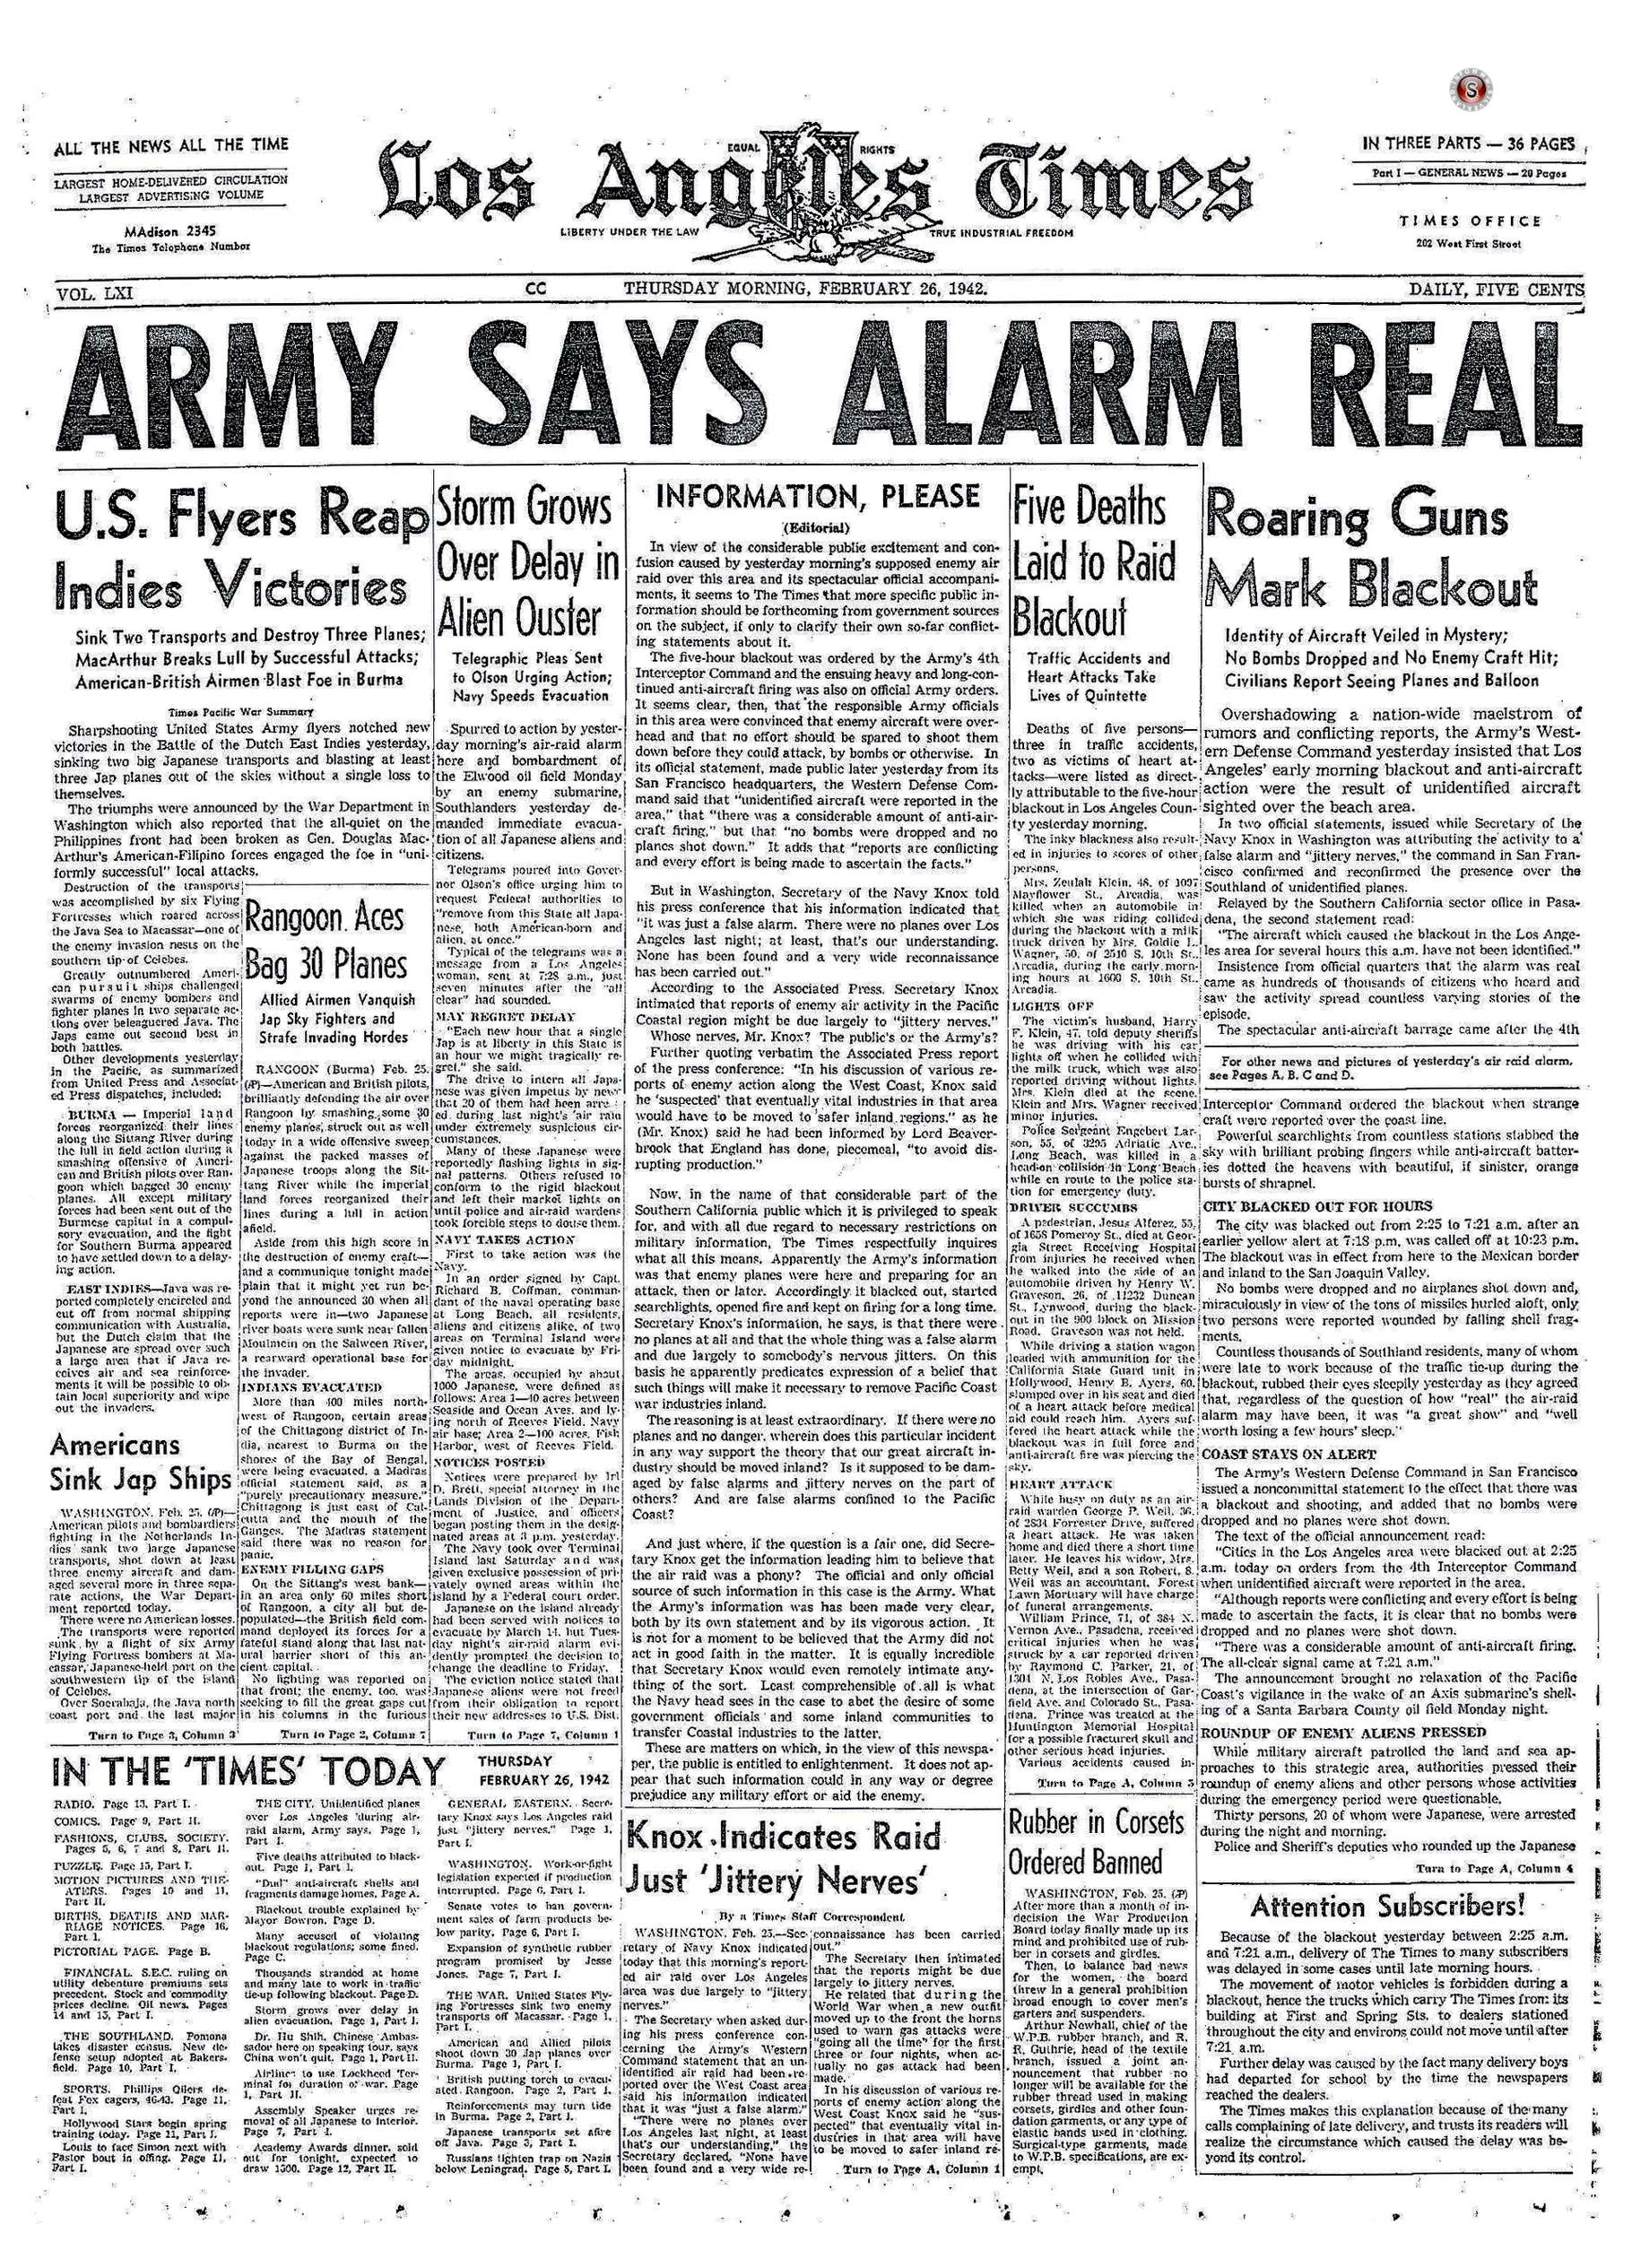 Battle of Los Angeles 1942 - Los Angeles Times